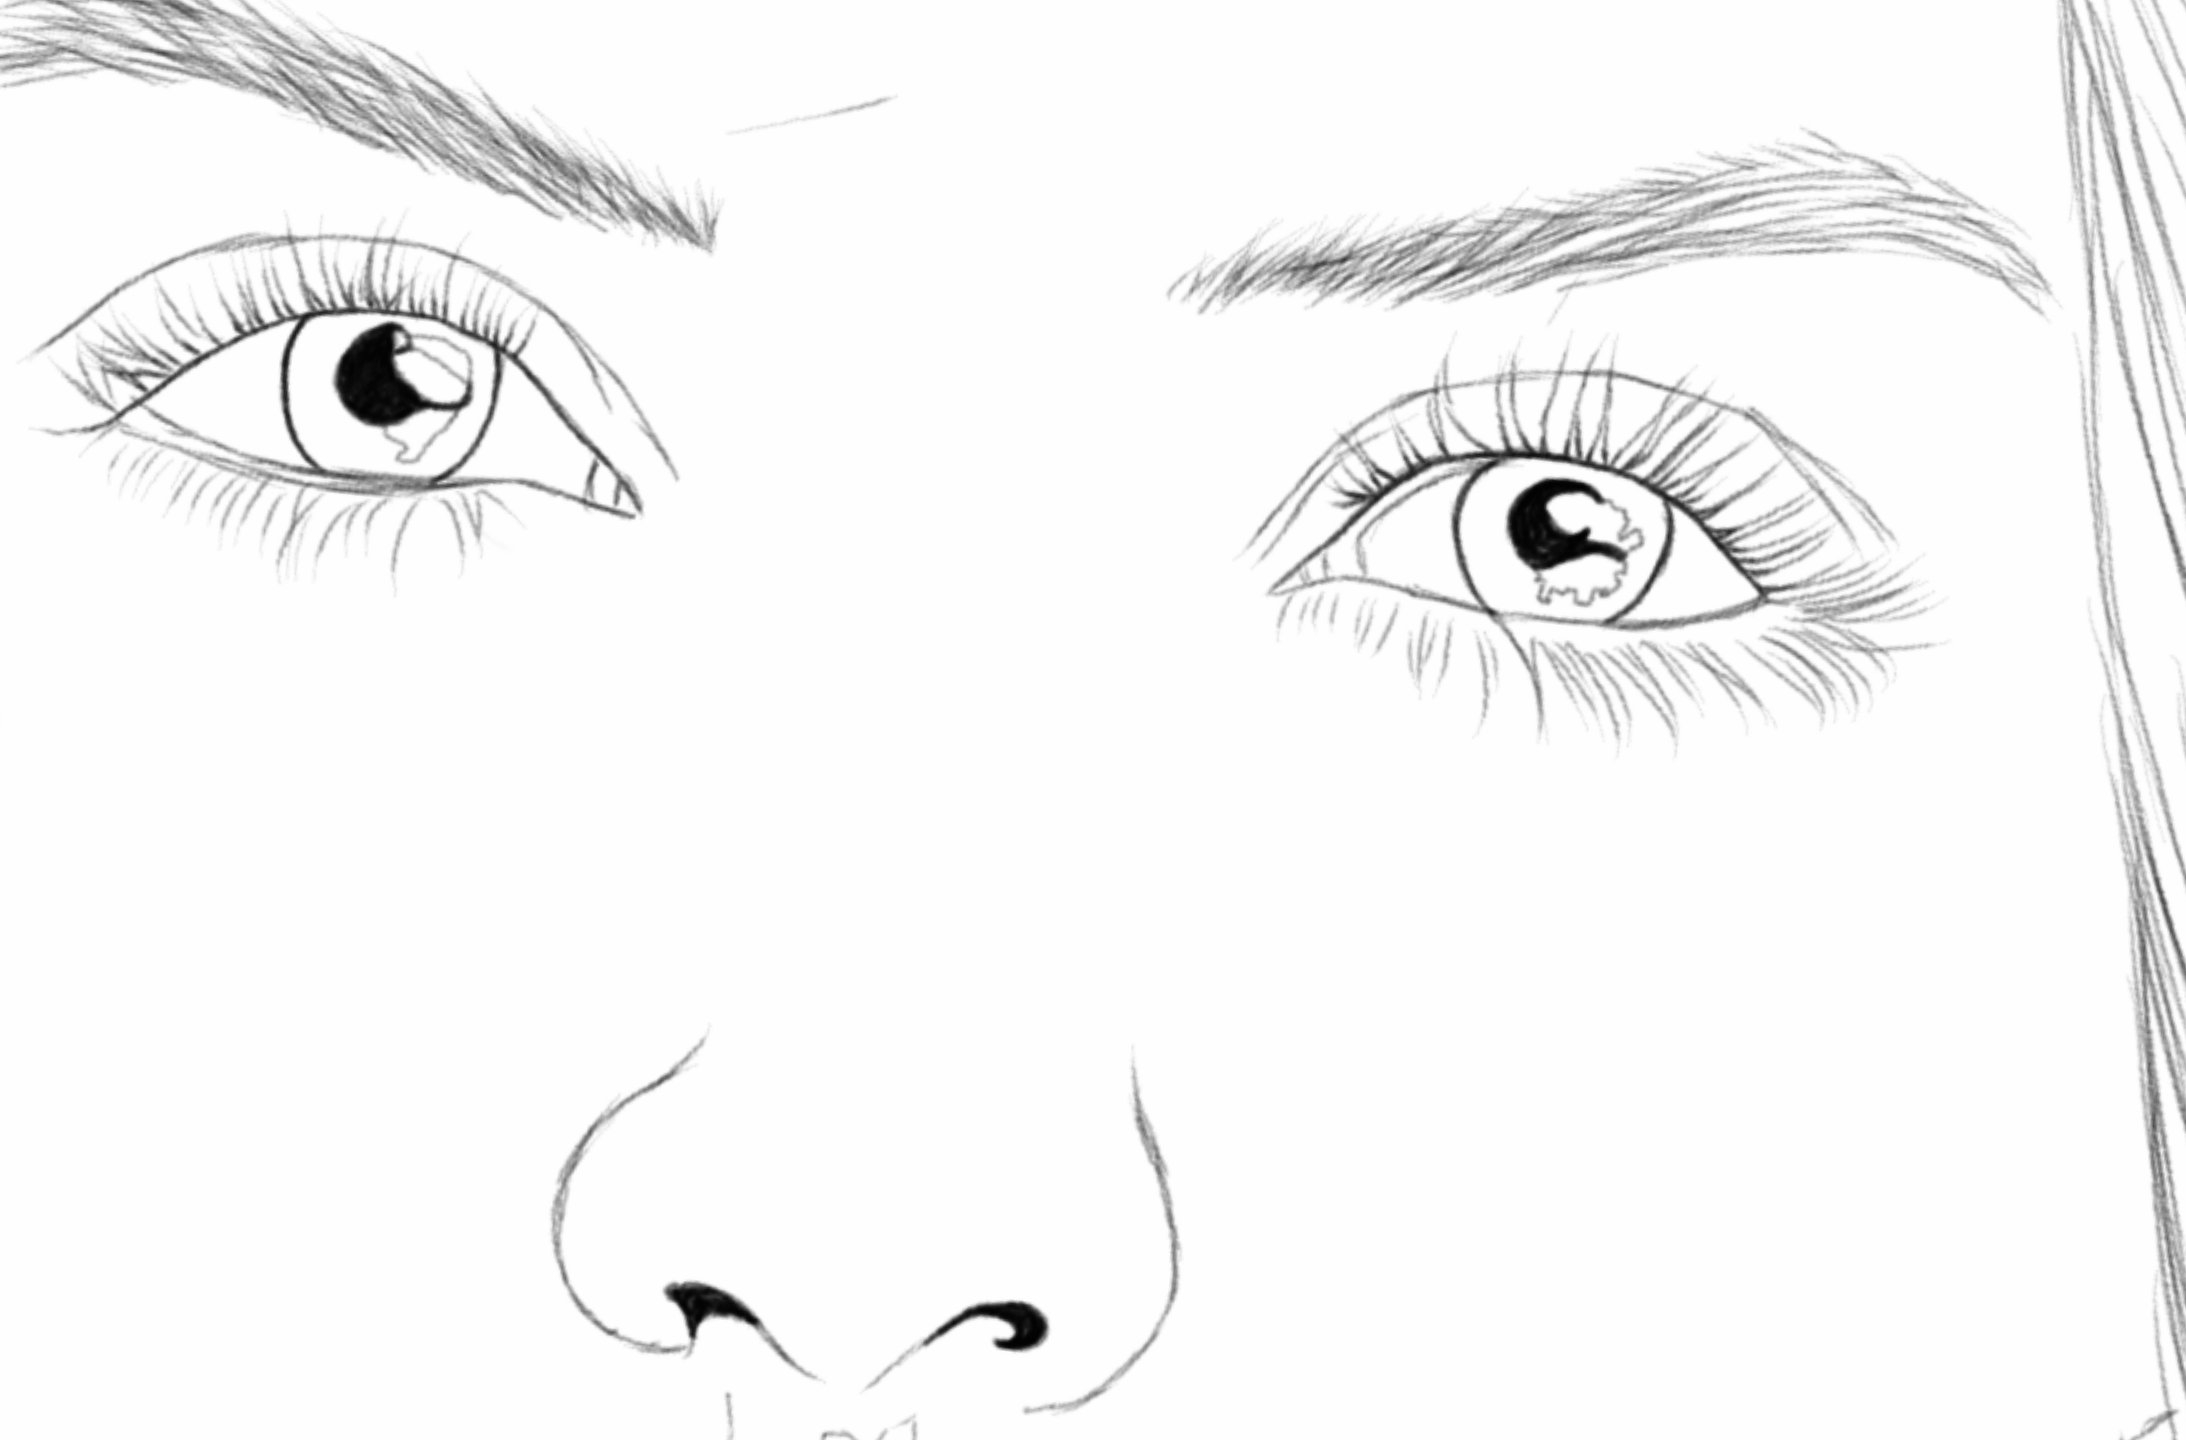 Daily Sketches - Day 25, Nasha - eyes